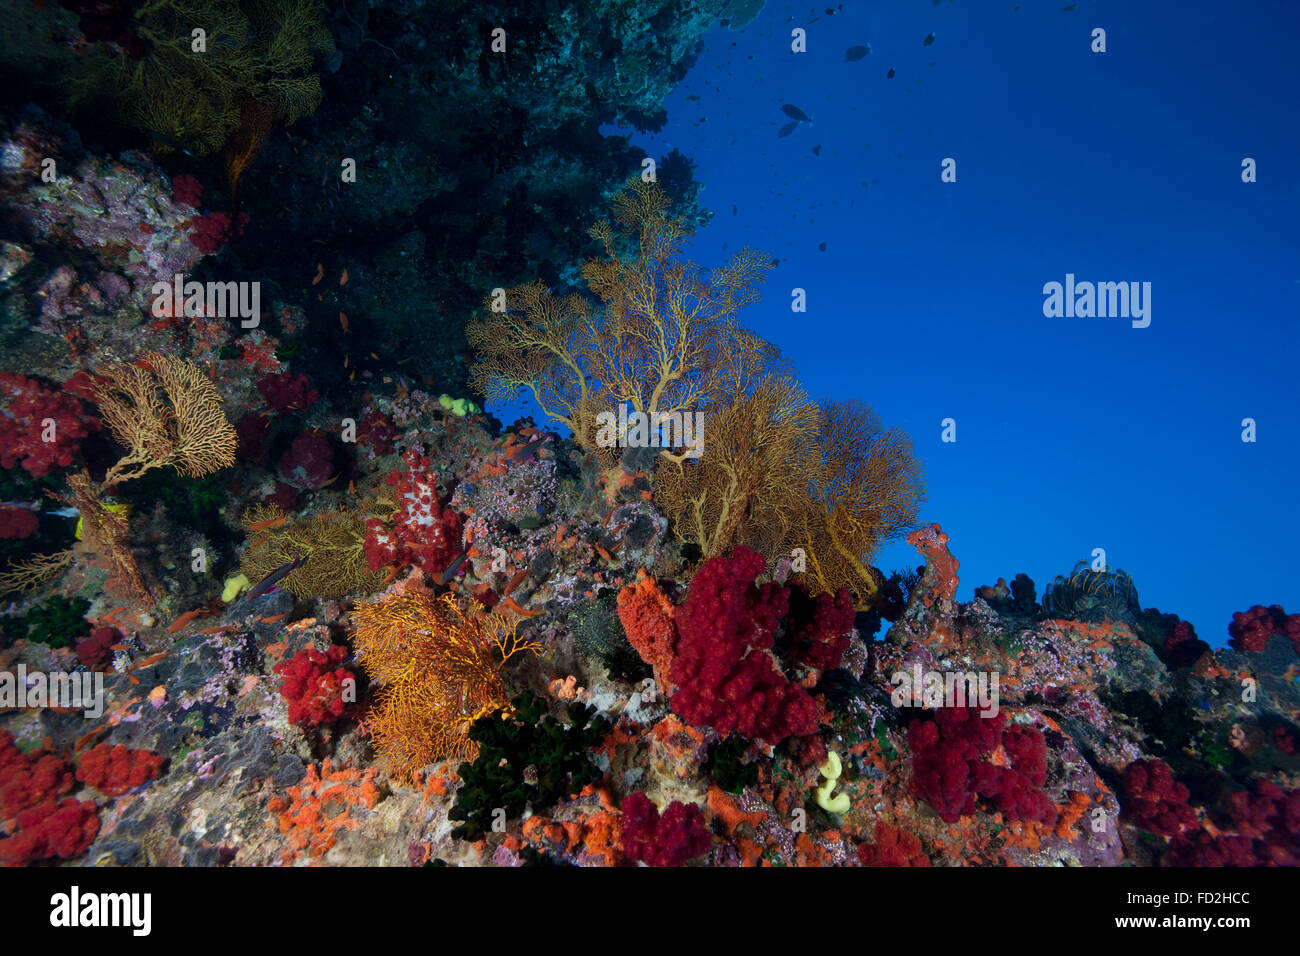 Beautiful soft corals and gorgonian sea fans adorn the walls and ceiling of a reef in Fiji. - Stock Image